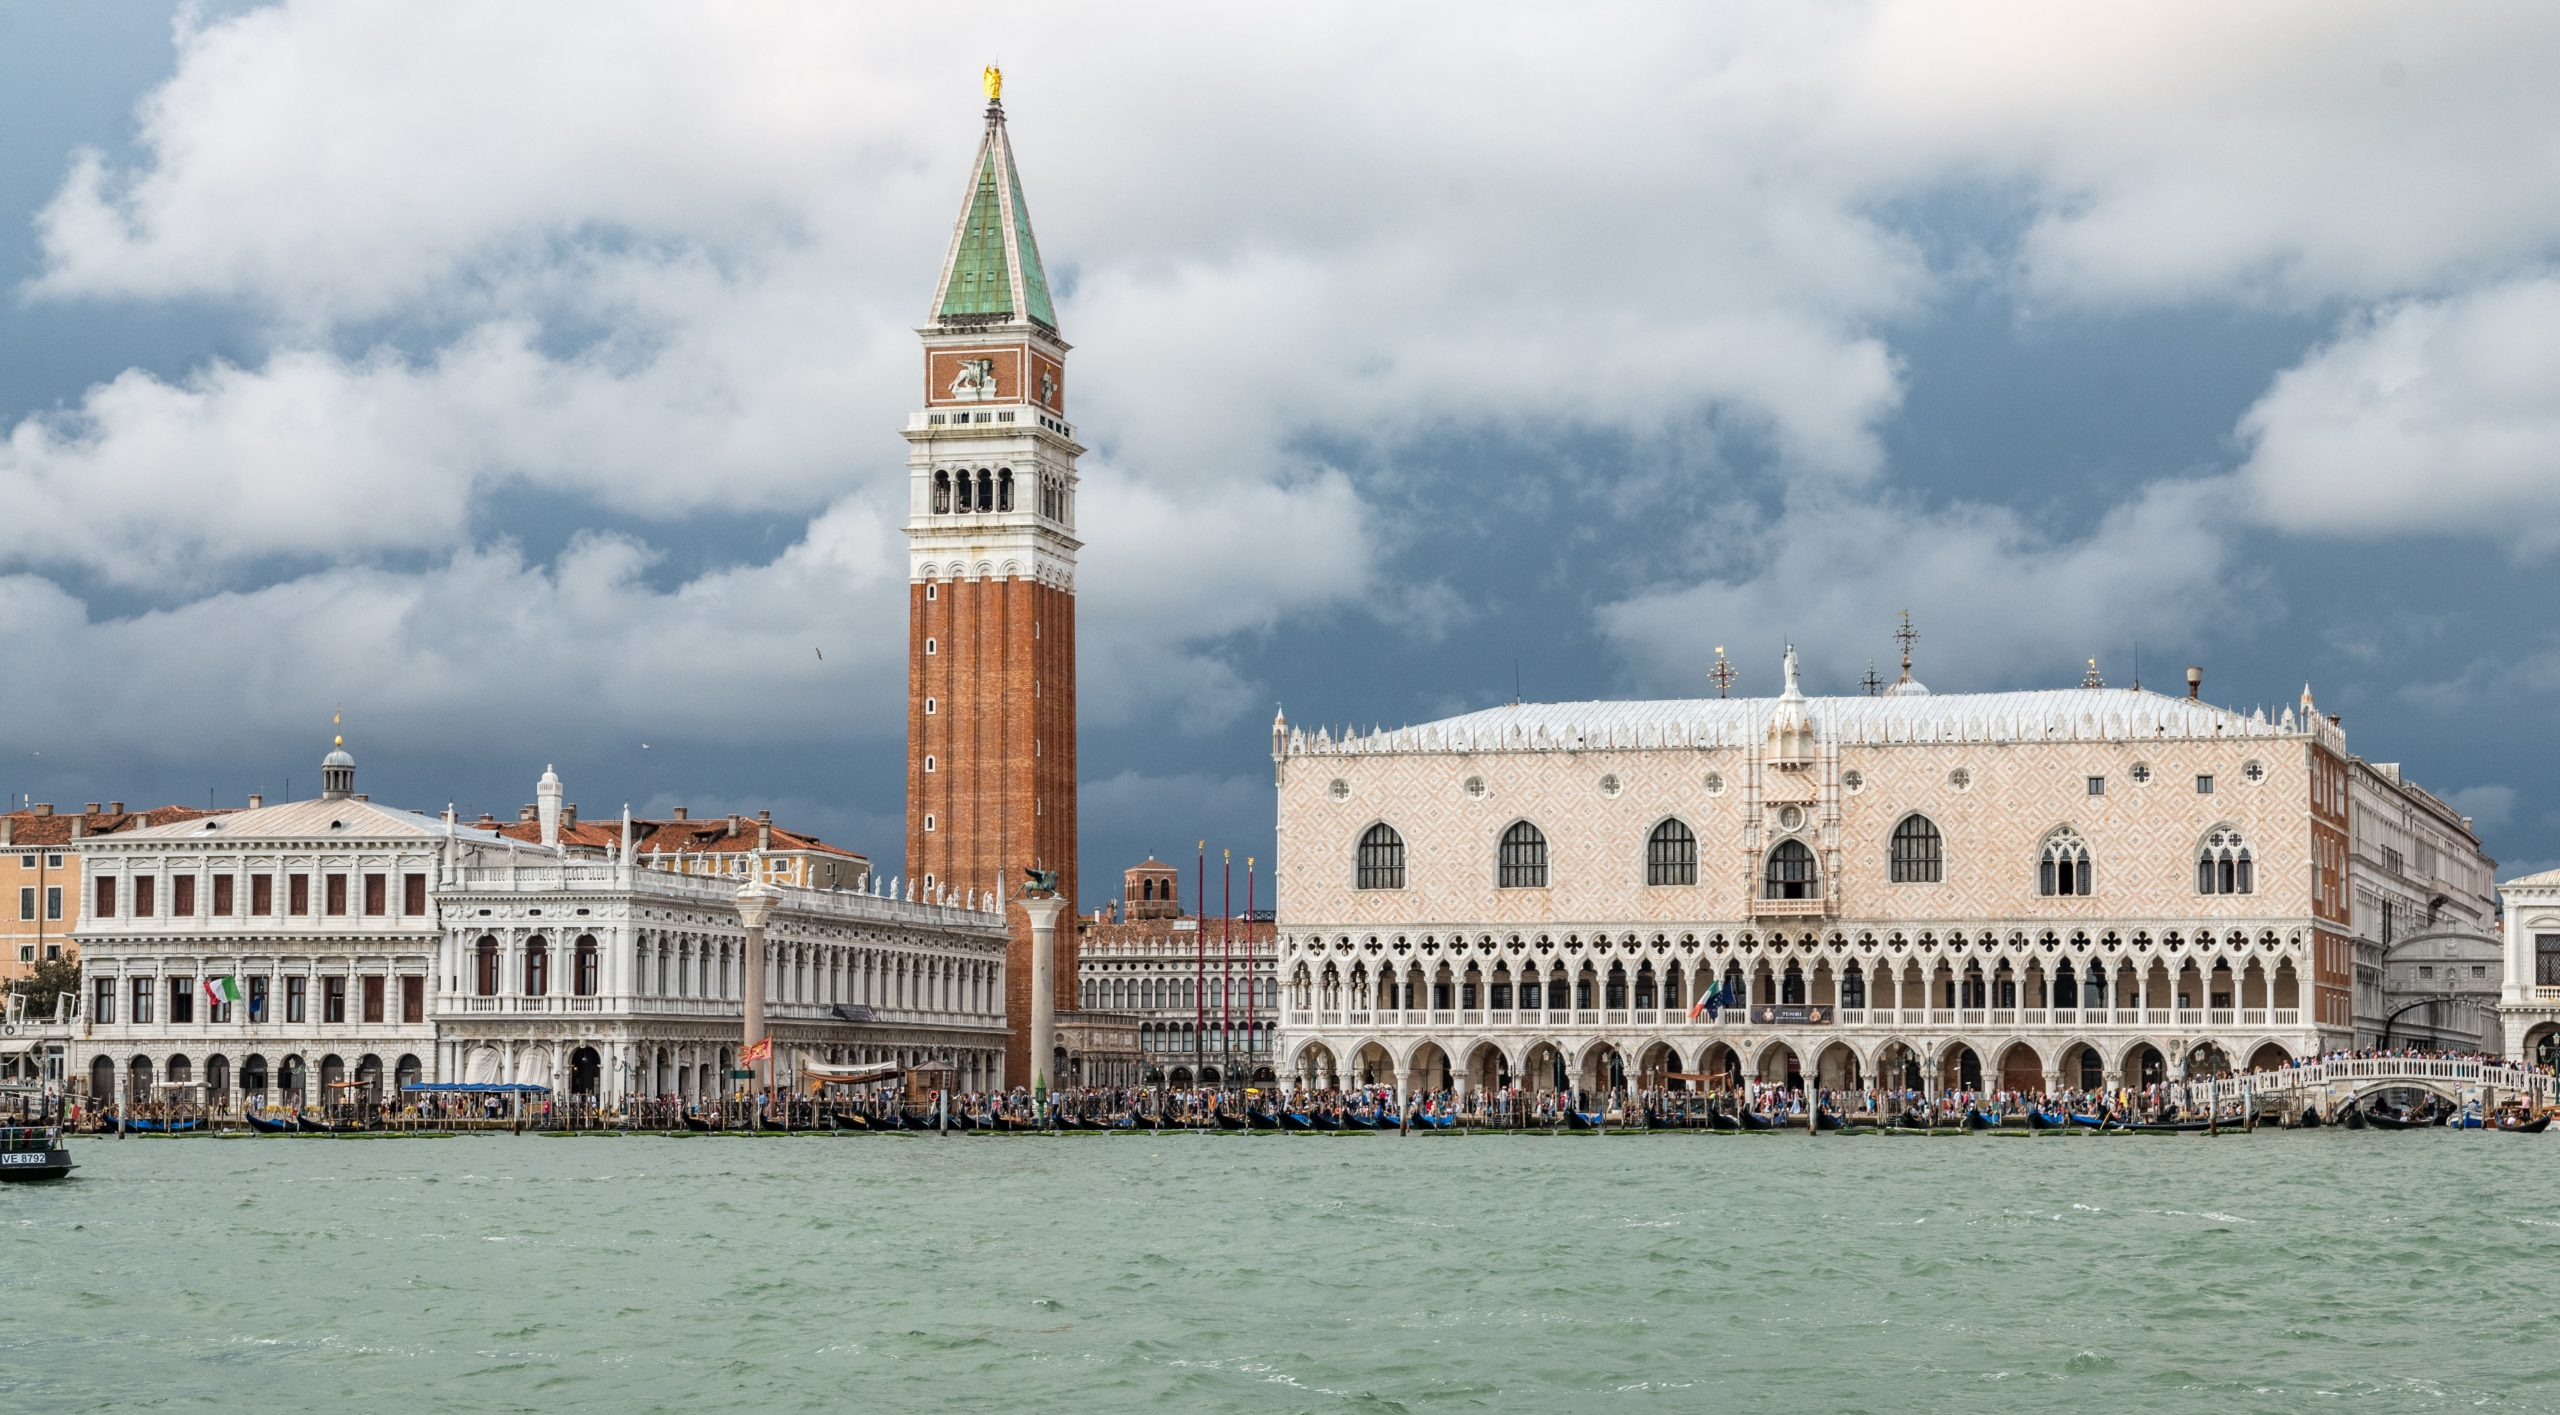 view of St. mark's square and Dodge's palace from the water